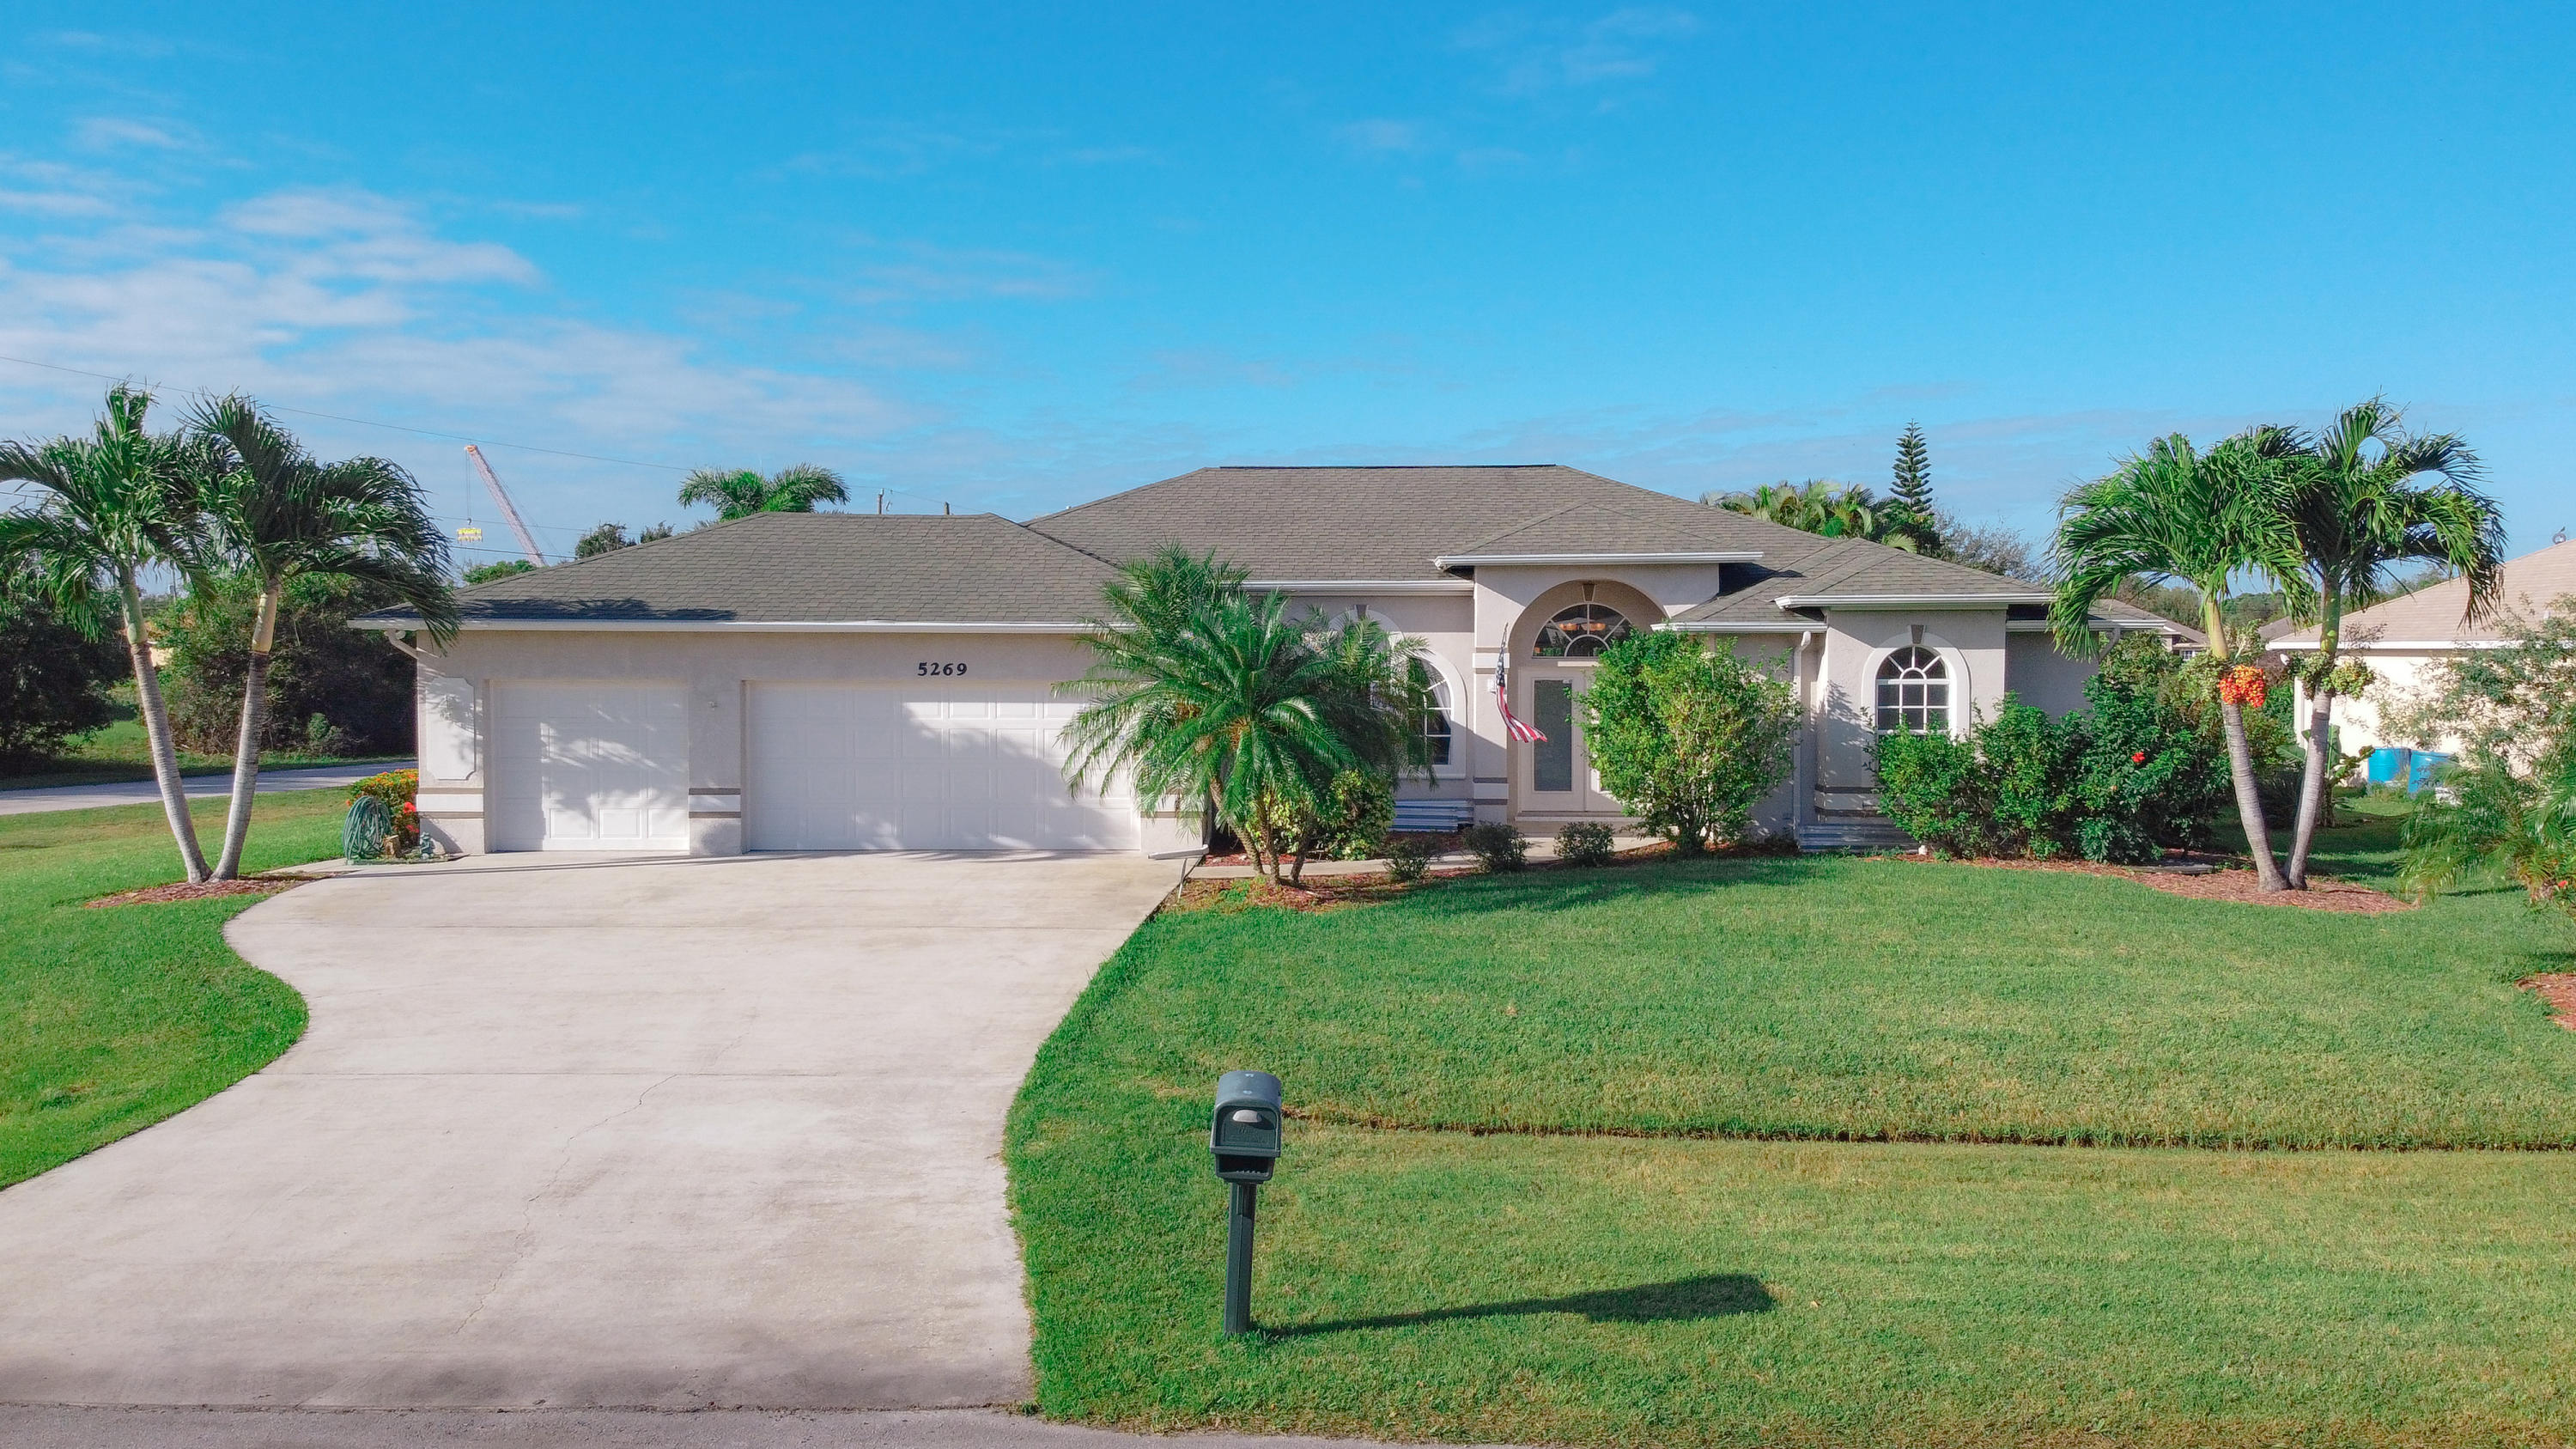 5269 Nw East Delwood Drive, Port Saint Lucie, FL 34986